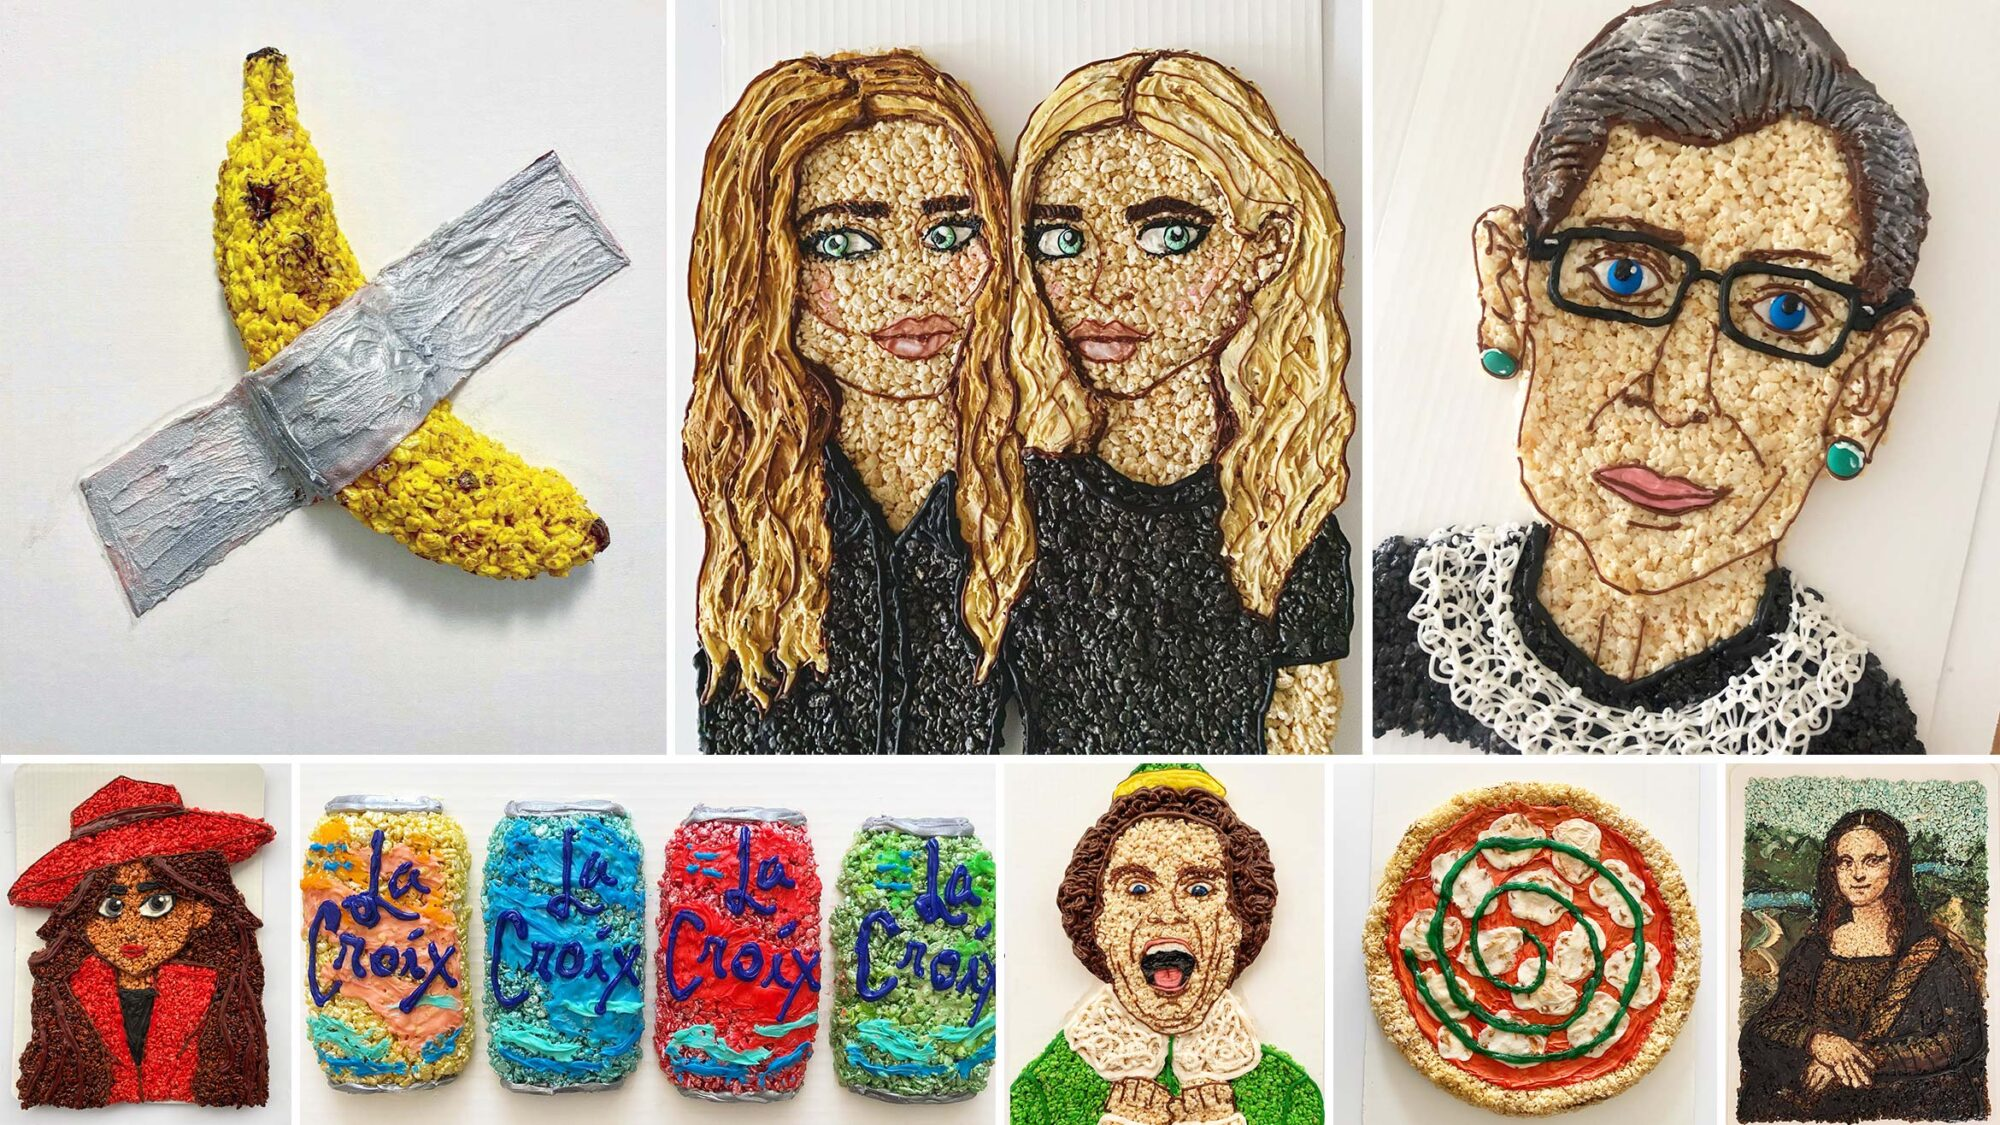 Article-Rice-Krispies-Treats-Art-Jessica-Siskin-Treat-Yourself